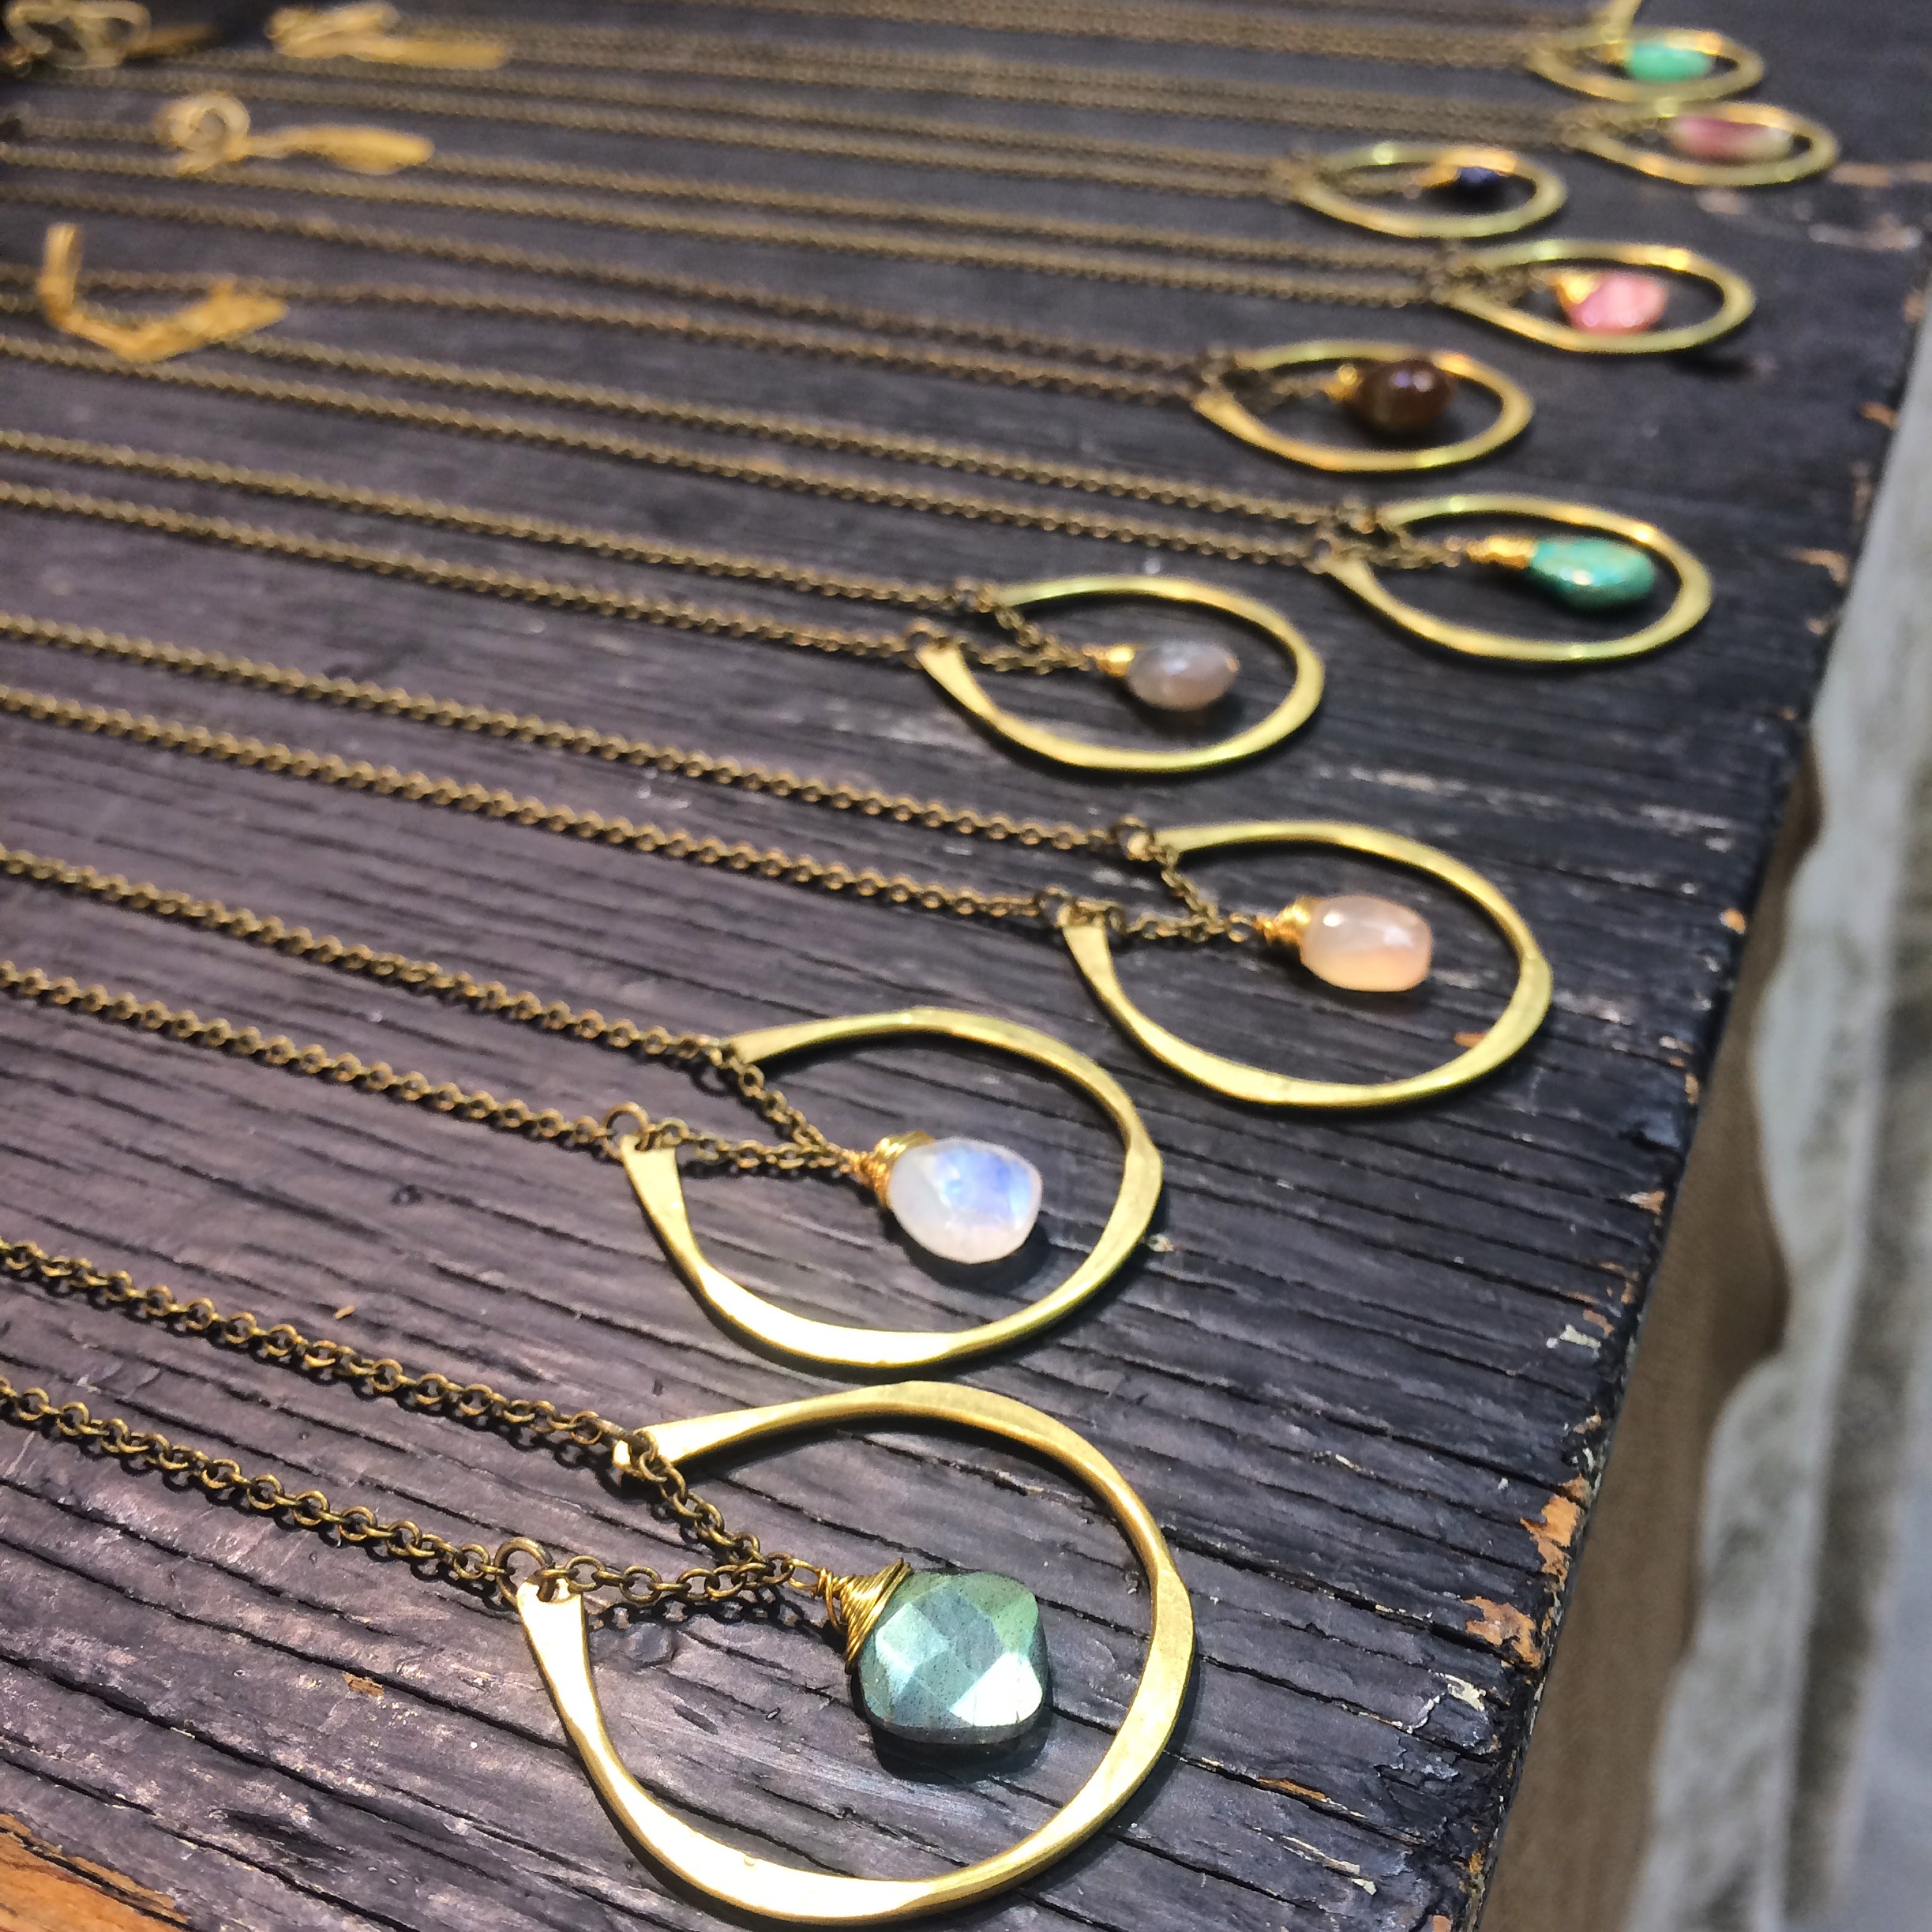 By Chance necklaces  - a popular hit at the Seattle Tradeshow.